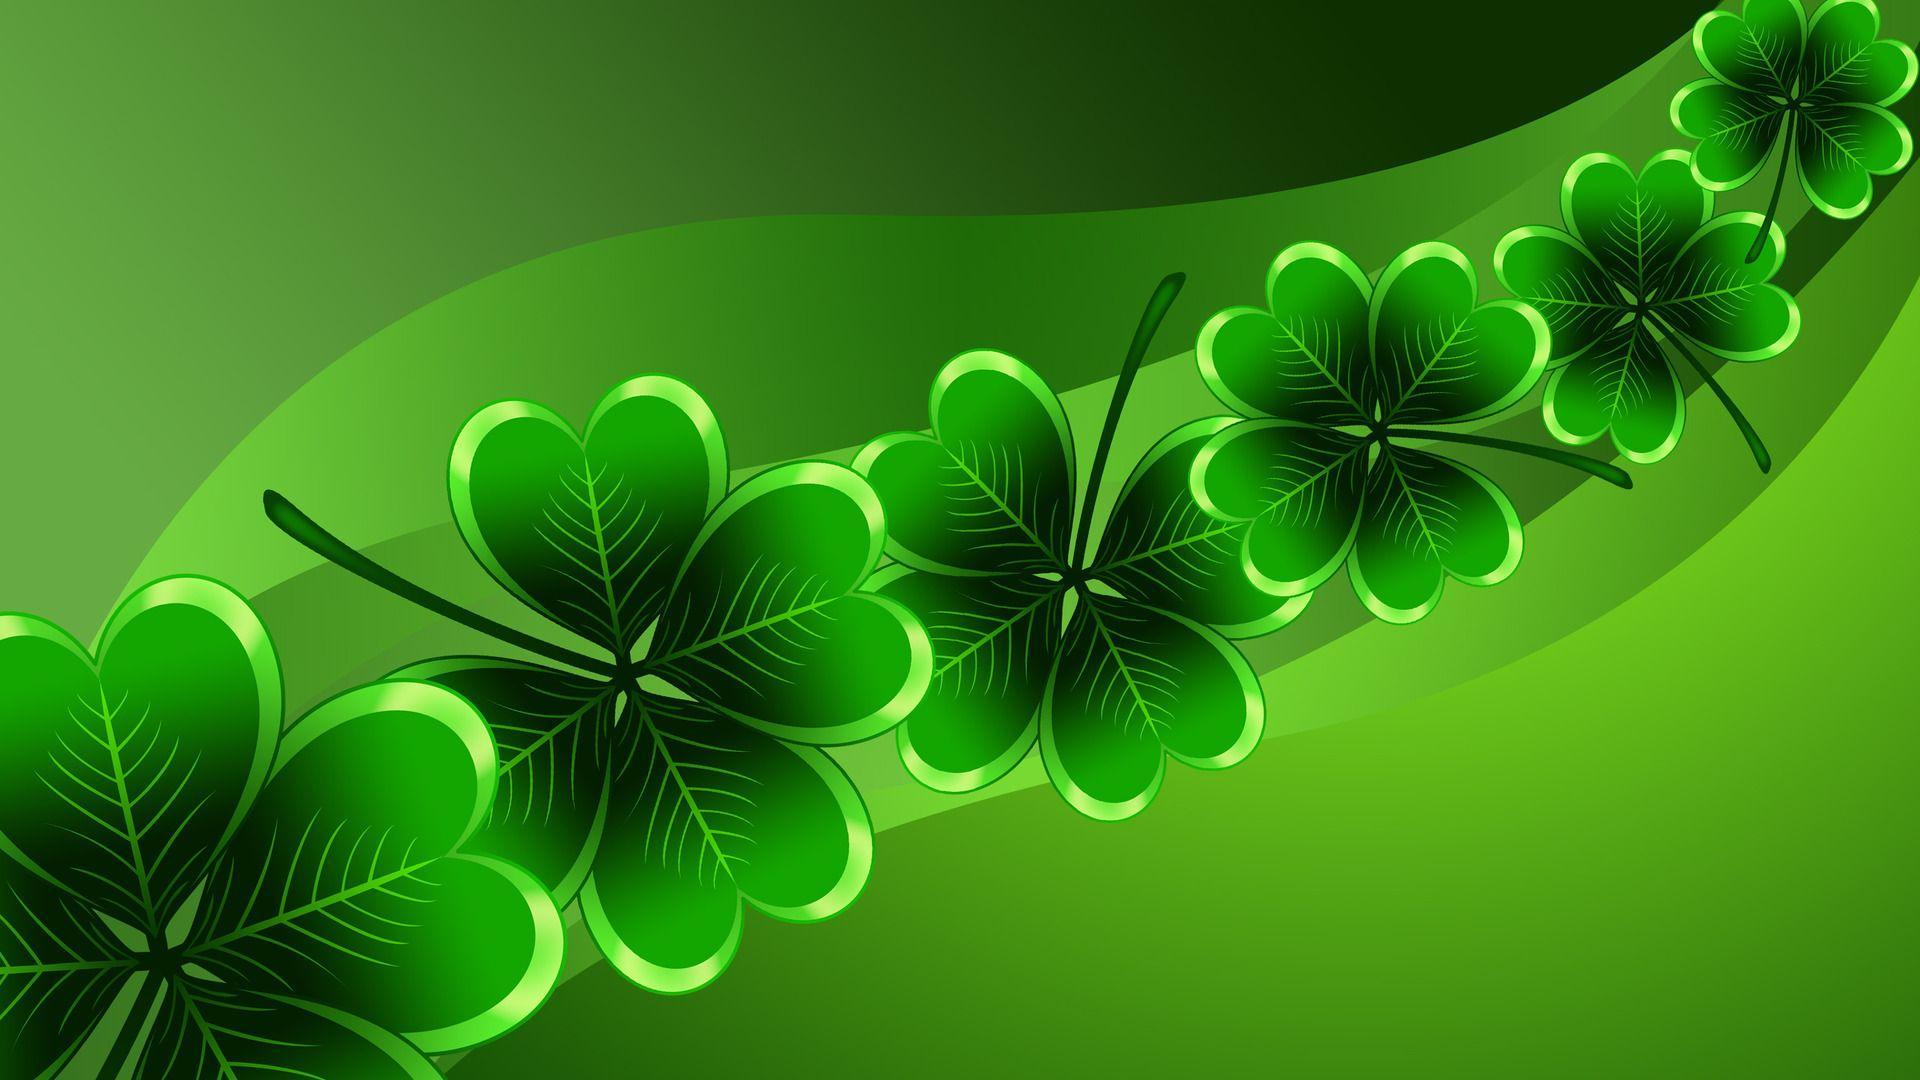 New} Saint Patrick's Day 2015 Wallpapers For Kids | Stuff to Buy ...